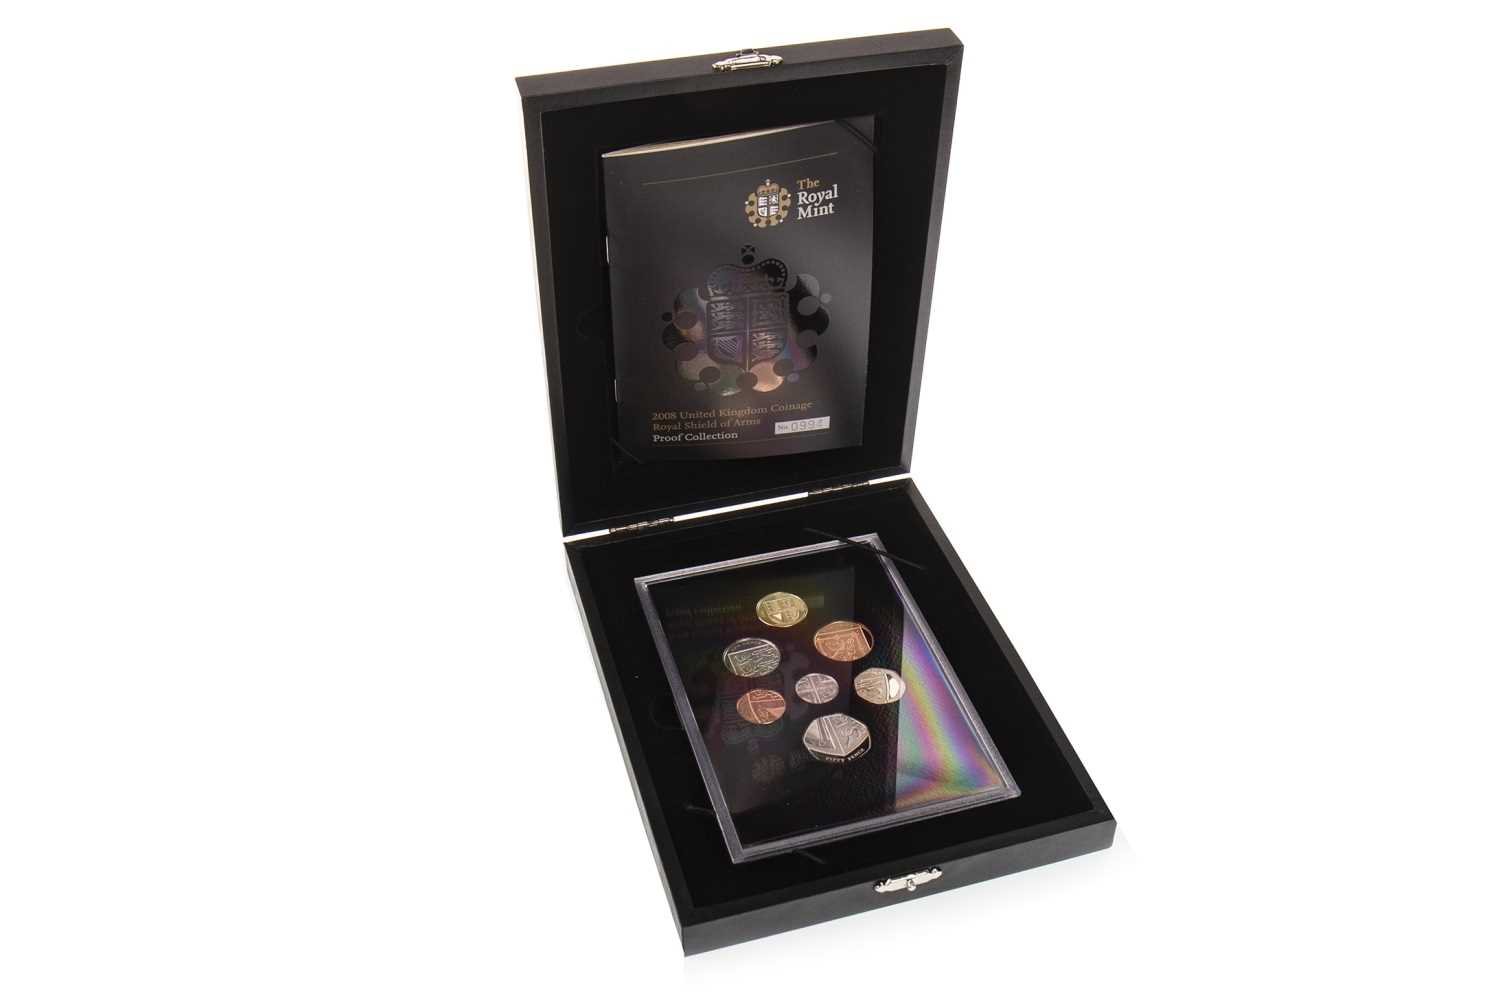 Lot 579-A THE ROYAL MINT 2008 ROYAL SHIELD OF ARMS PROOF COLLECTION